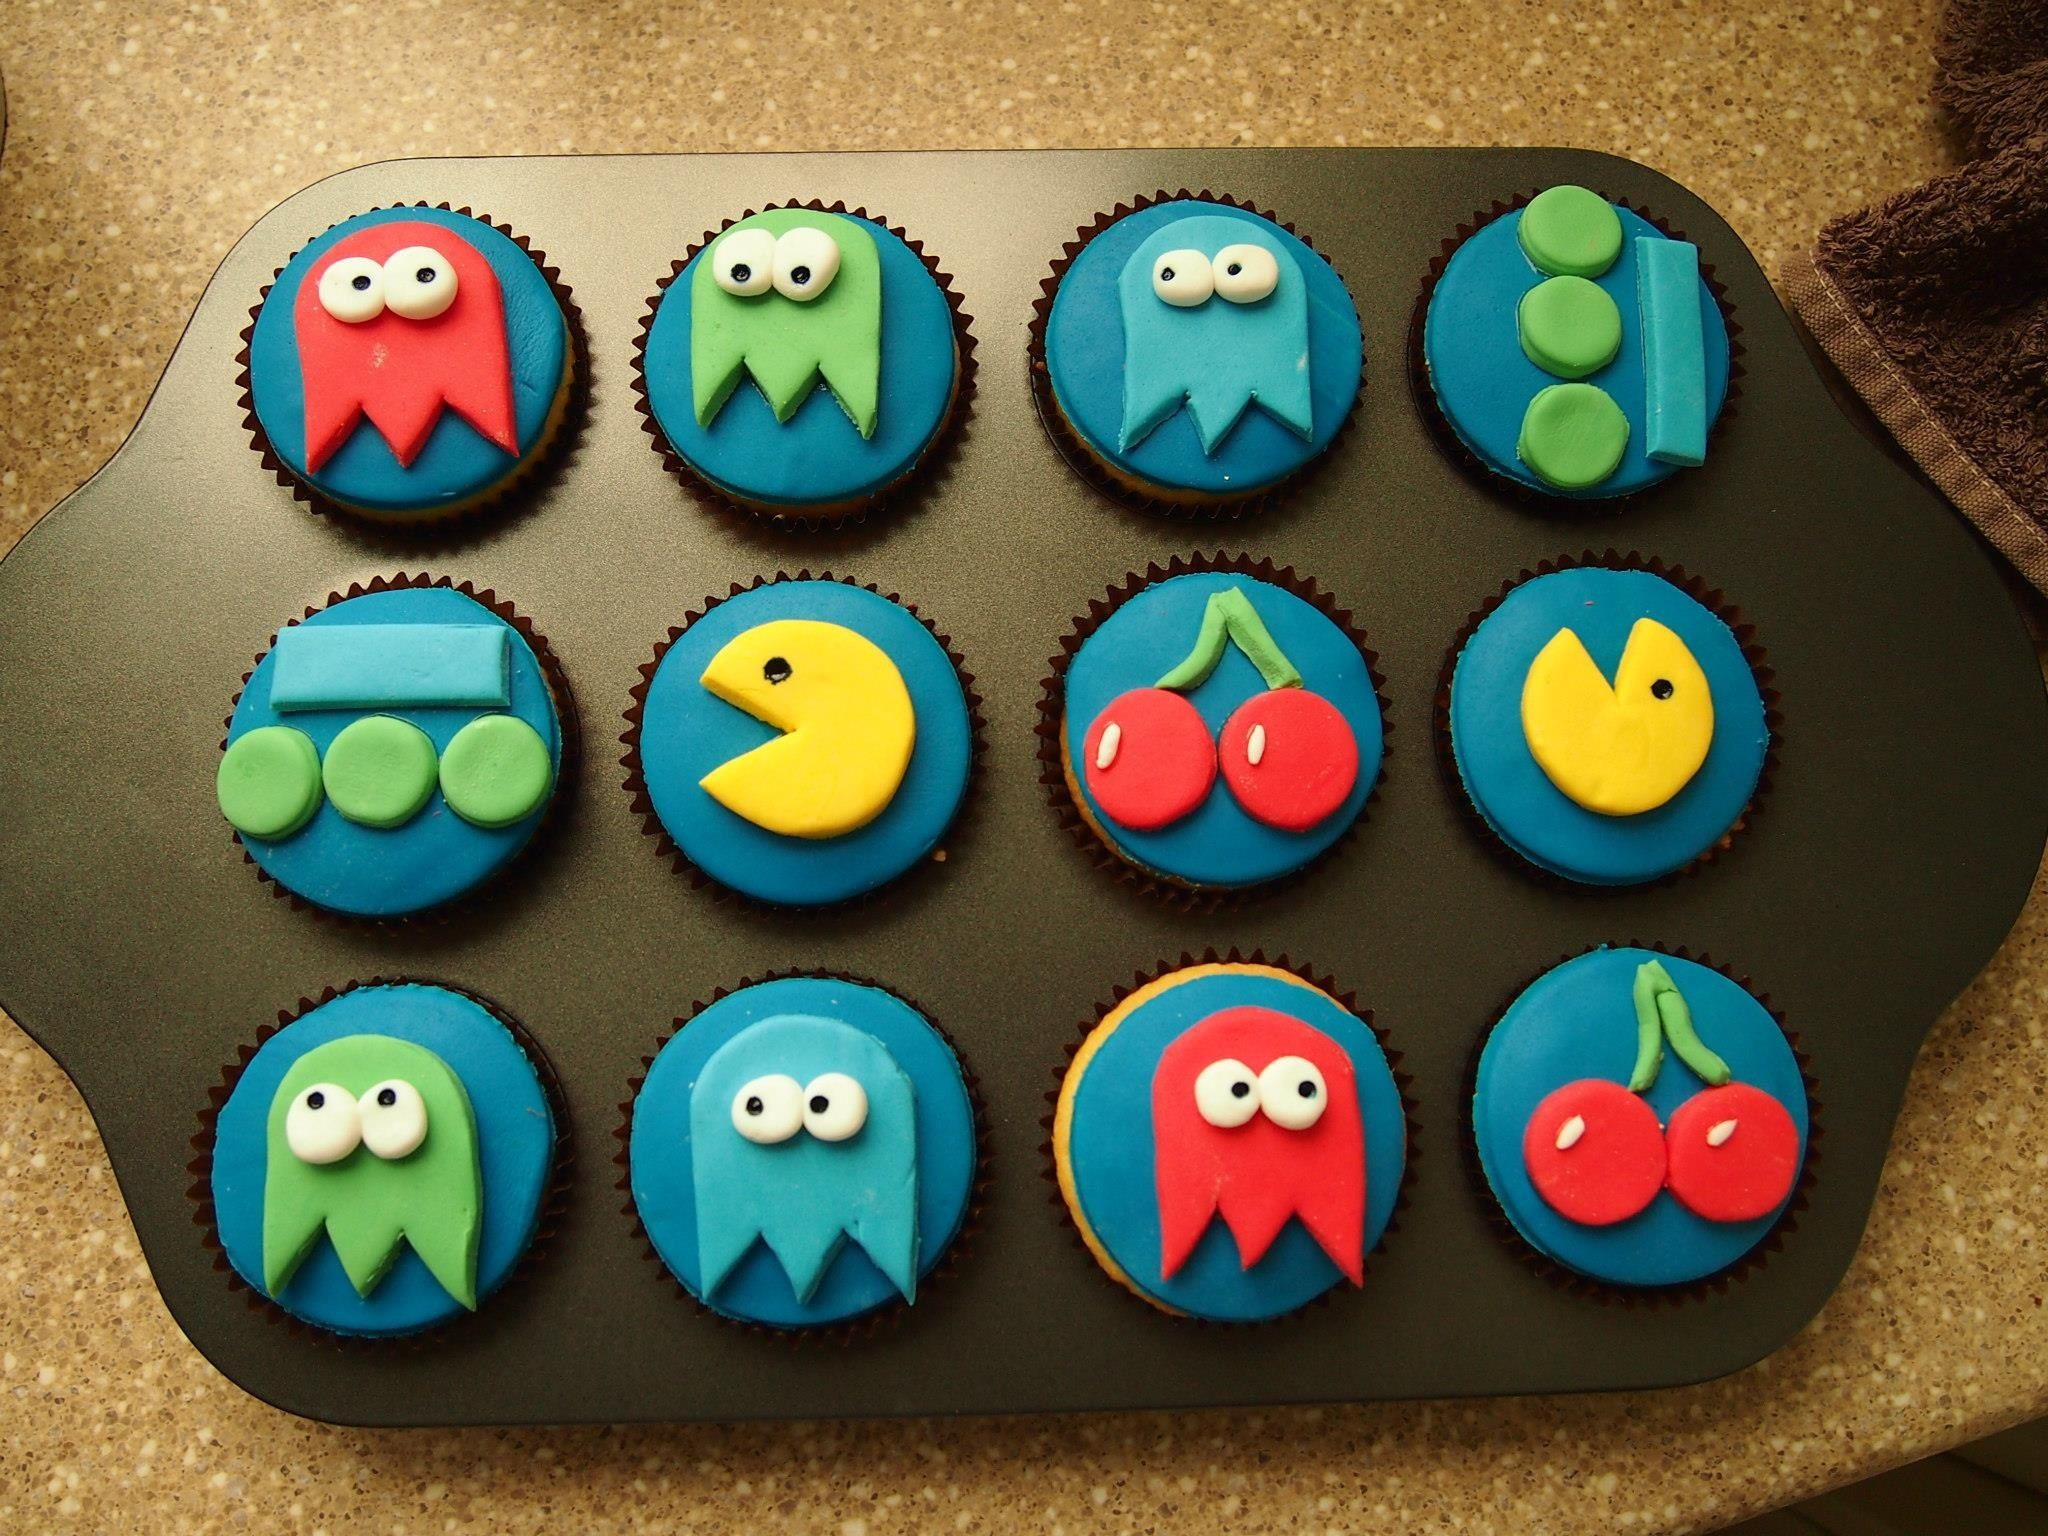 Best Parties Video Games Images On Pinterest Birthday Party - Video game birthday cake